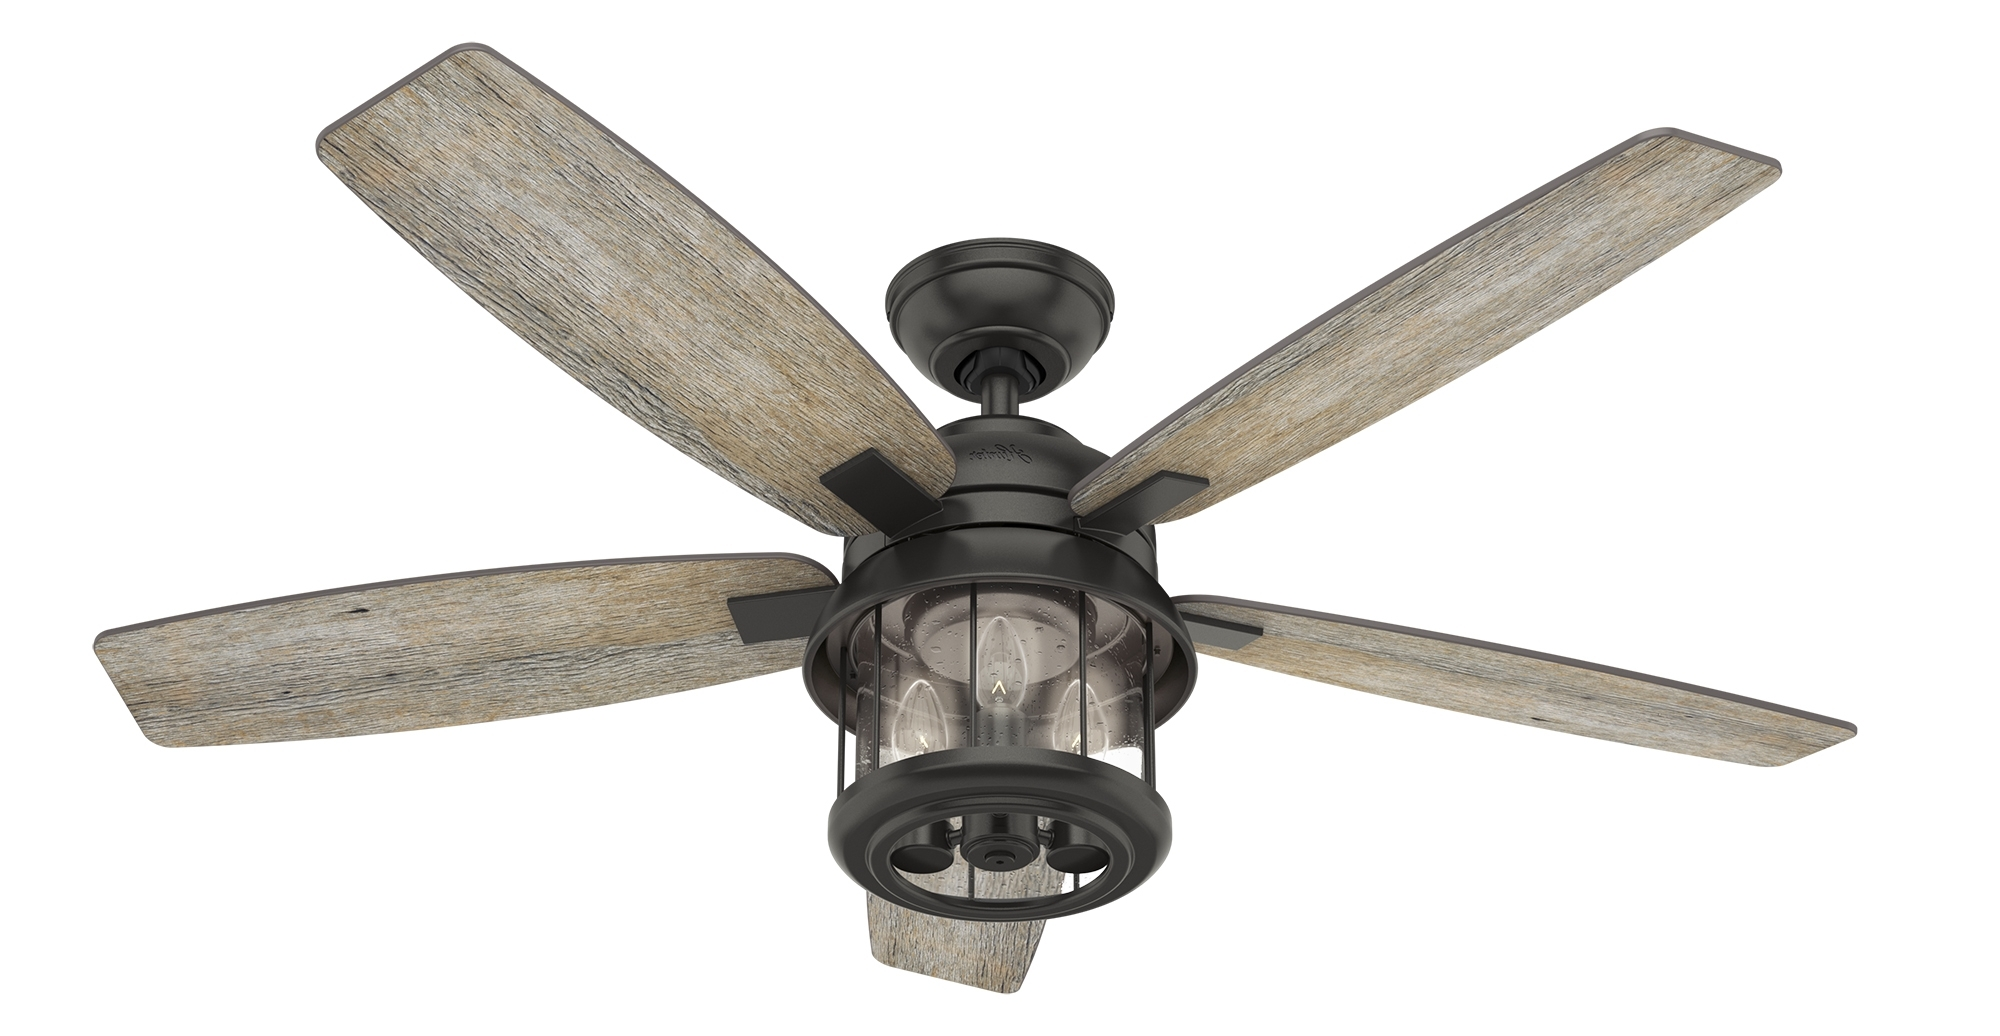 Outdoor Ceiling Fans With Lantern Light Intended For 2019 Coral Bay Lantern Outdoor Ceiling Fan With Led Edison Light – Hunter (Gallery 11 of 20)